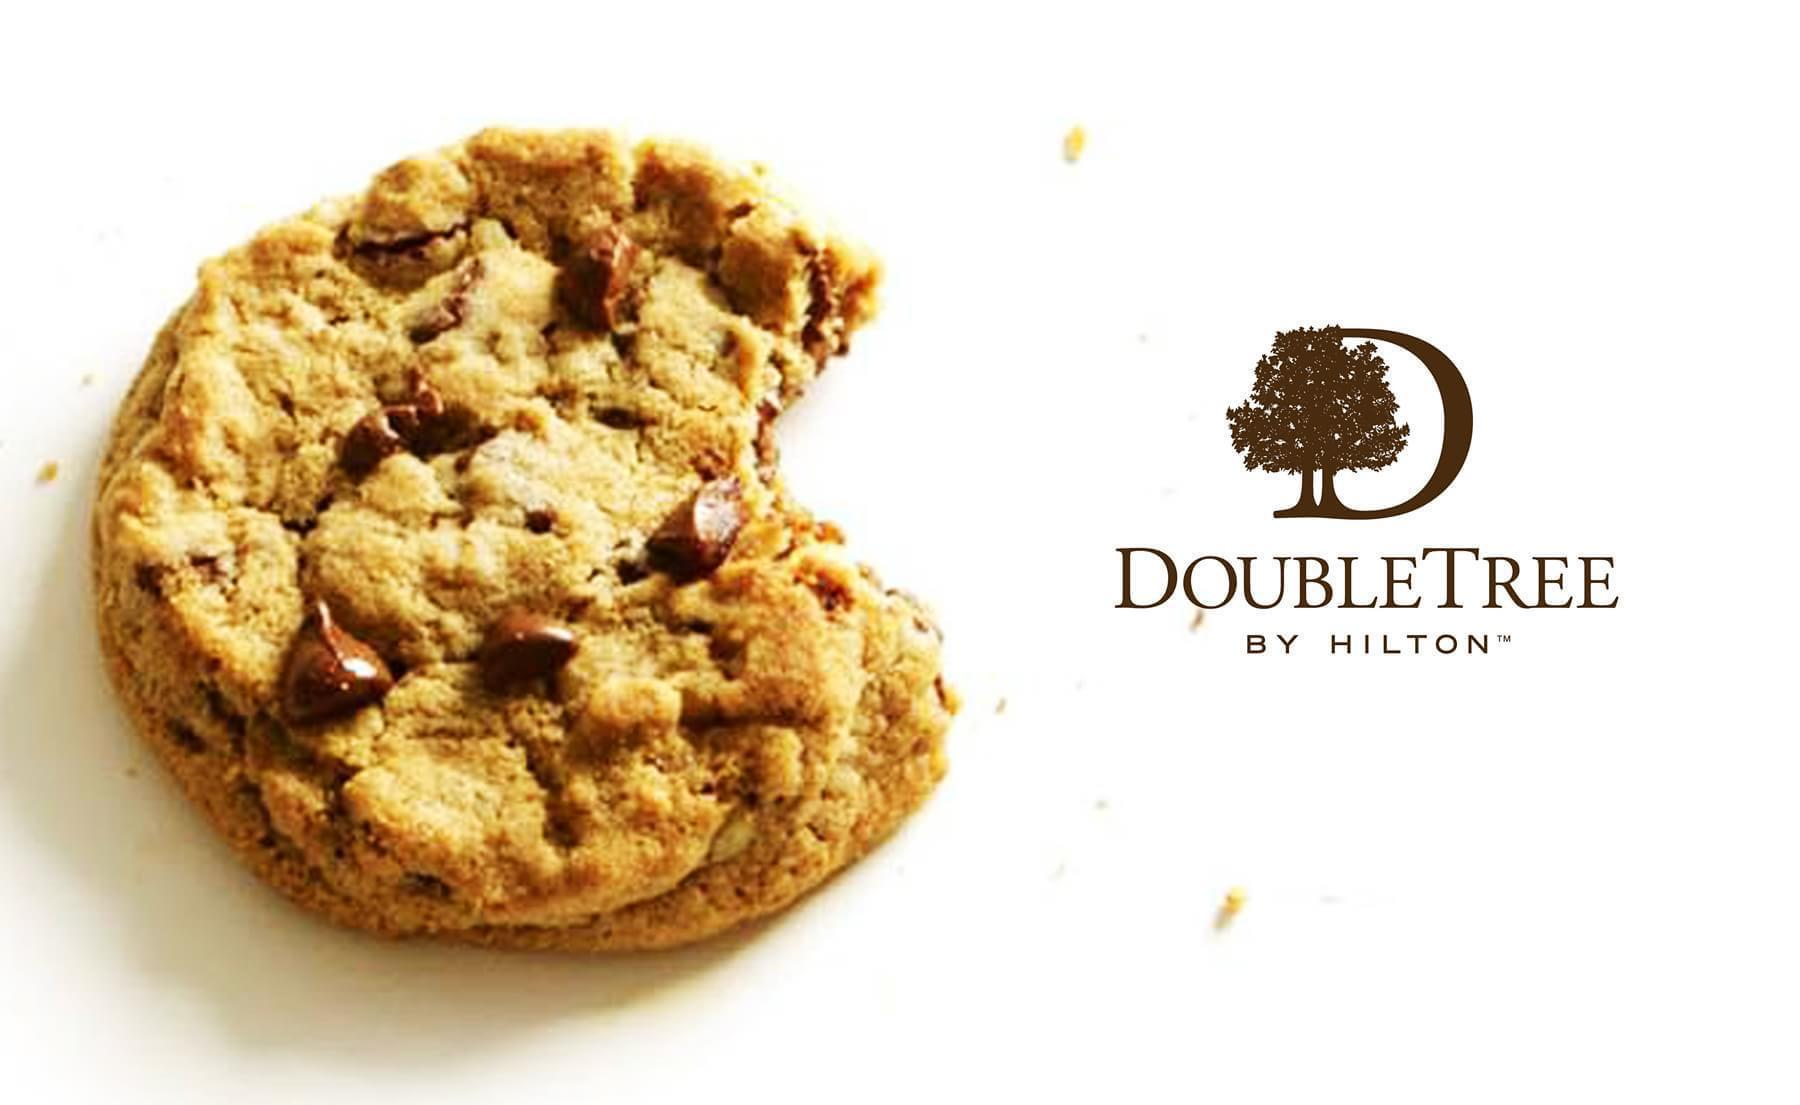 DoubleTree Hotels on Facebook: Benchmarking from Fellow-brands